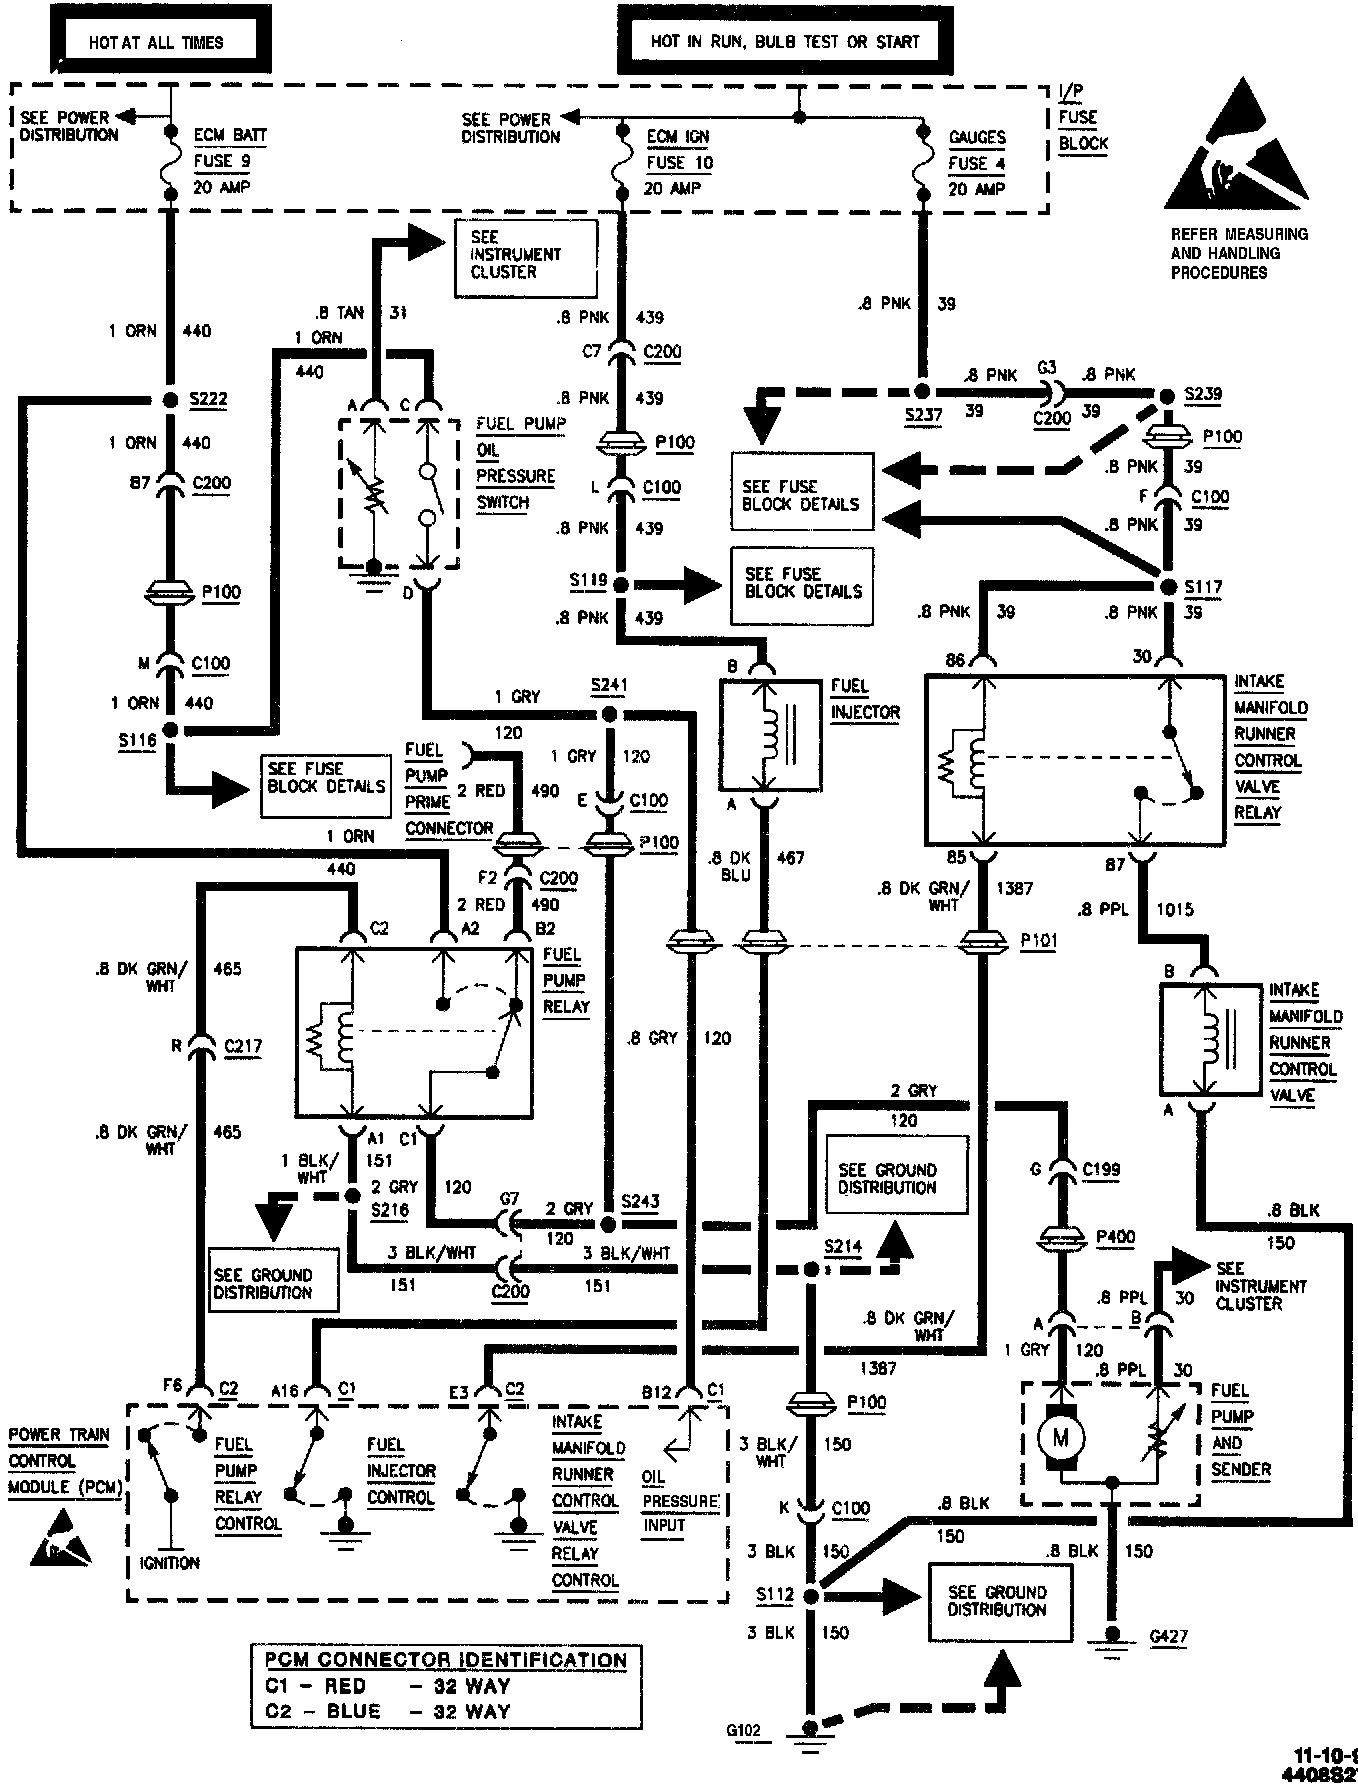 hight resolution of wire diagram for 99 s10 engine 4 3 wiring library rh 88 skriptoase de 2004 chevy